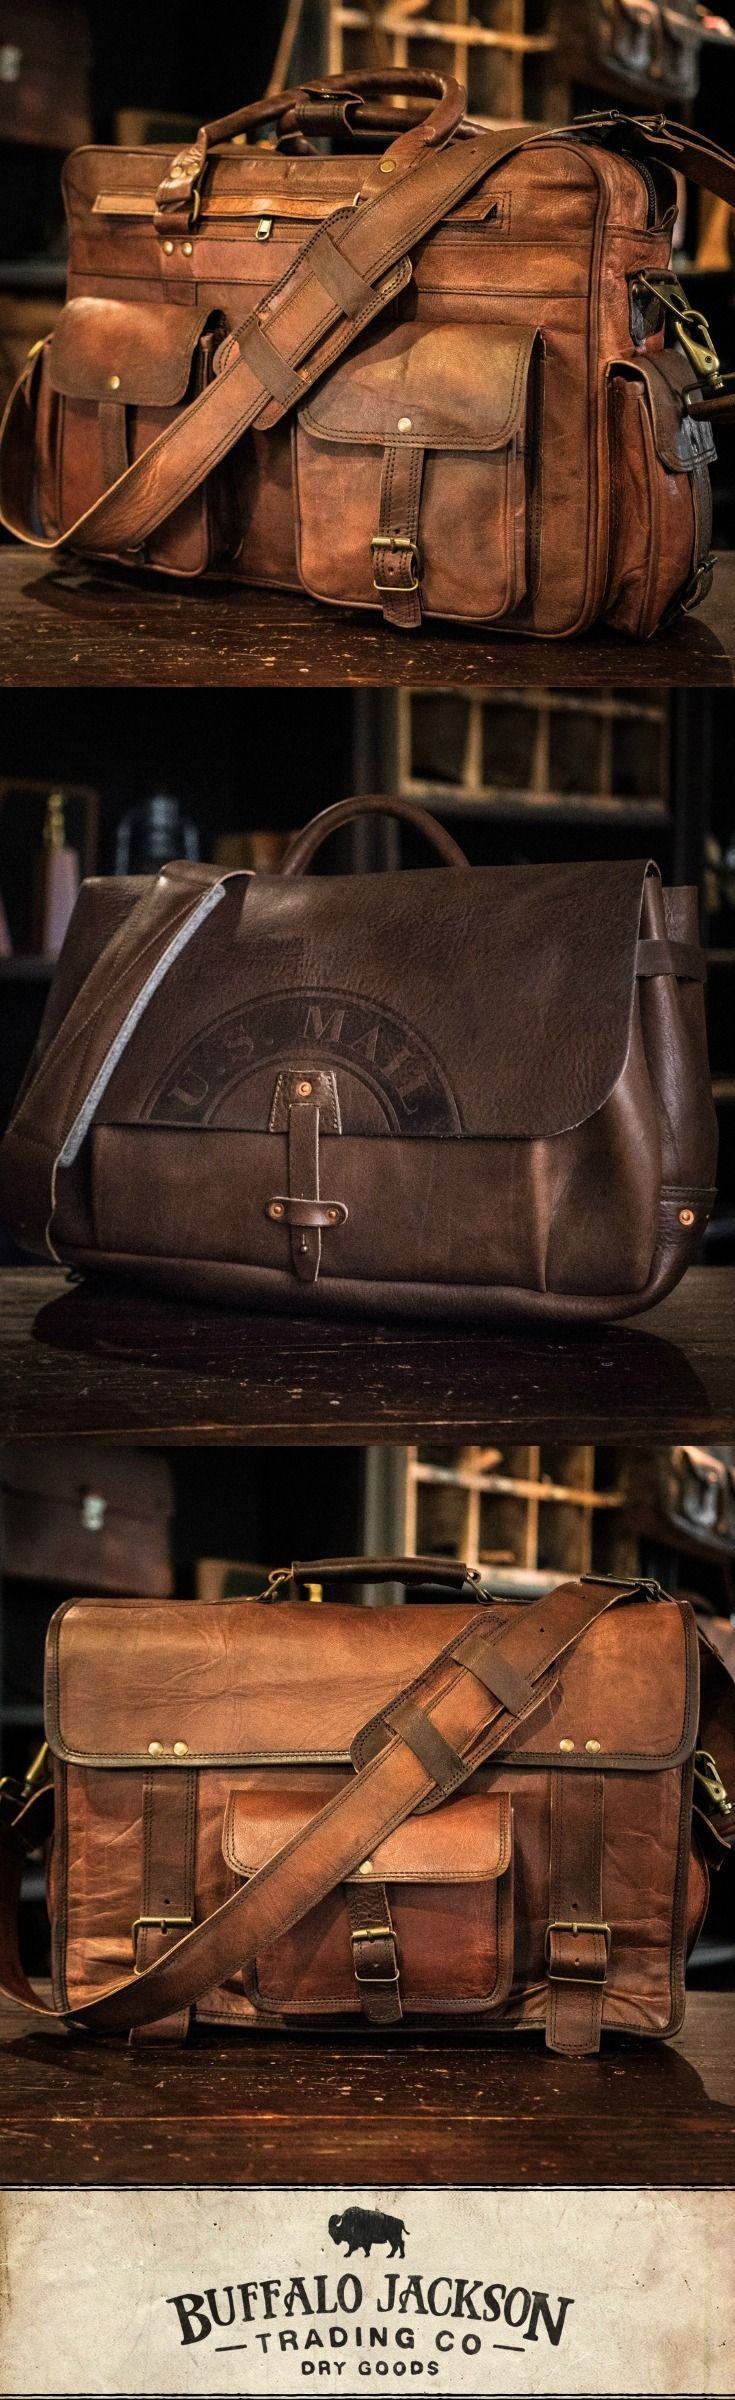 Amazing collection of leather products for men. Impressive quality and attention to detail. Bison leather, traditional leather, vintage, and more. Great rugged vibe. messenger bags | briefcase bags | camera bags | luggage | wallets